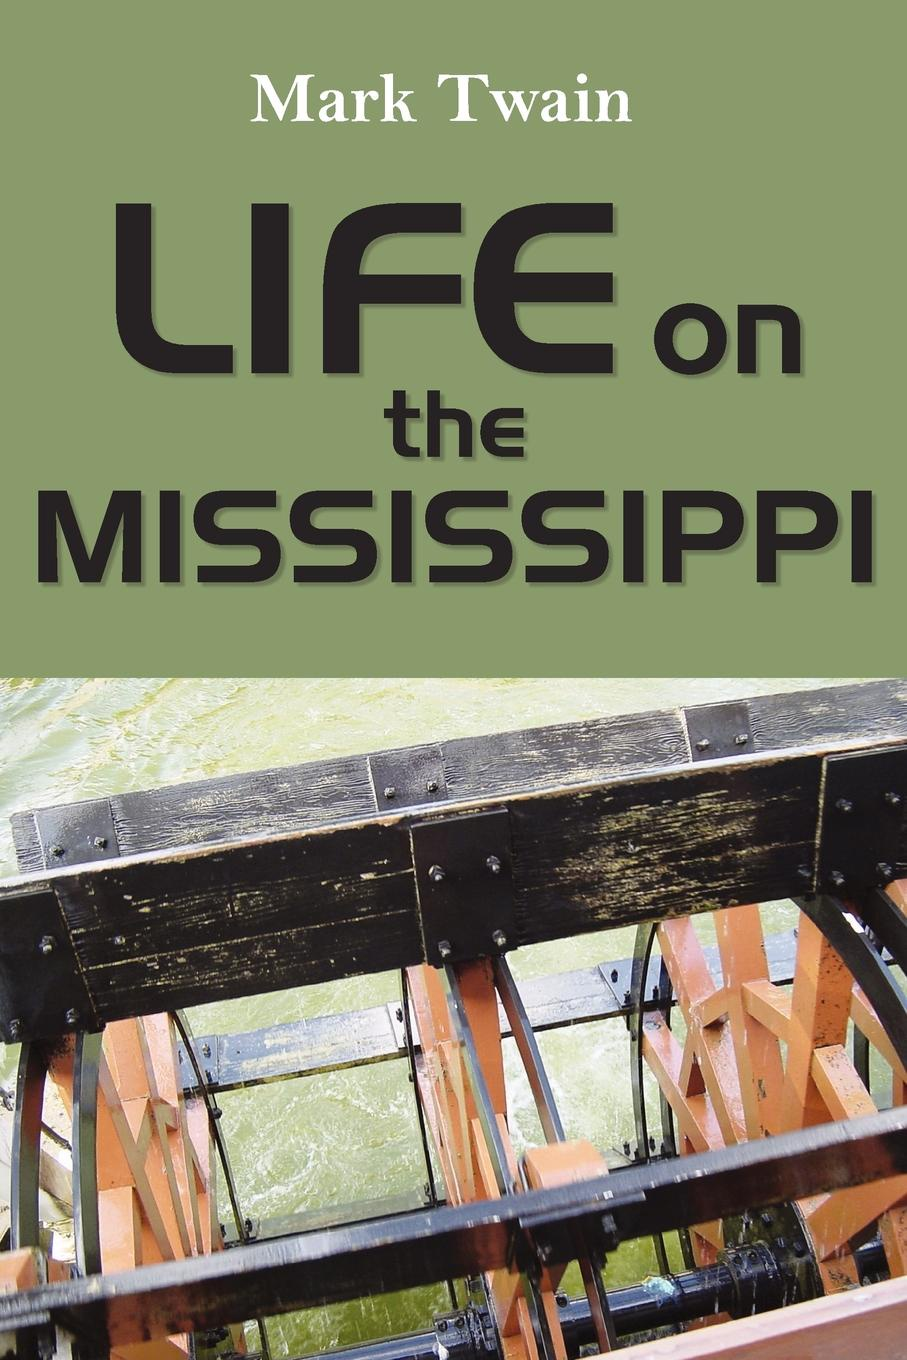 Mark Twain Life on the Mississippi марк твен life on the mississippi